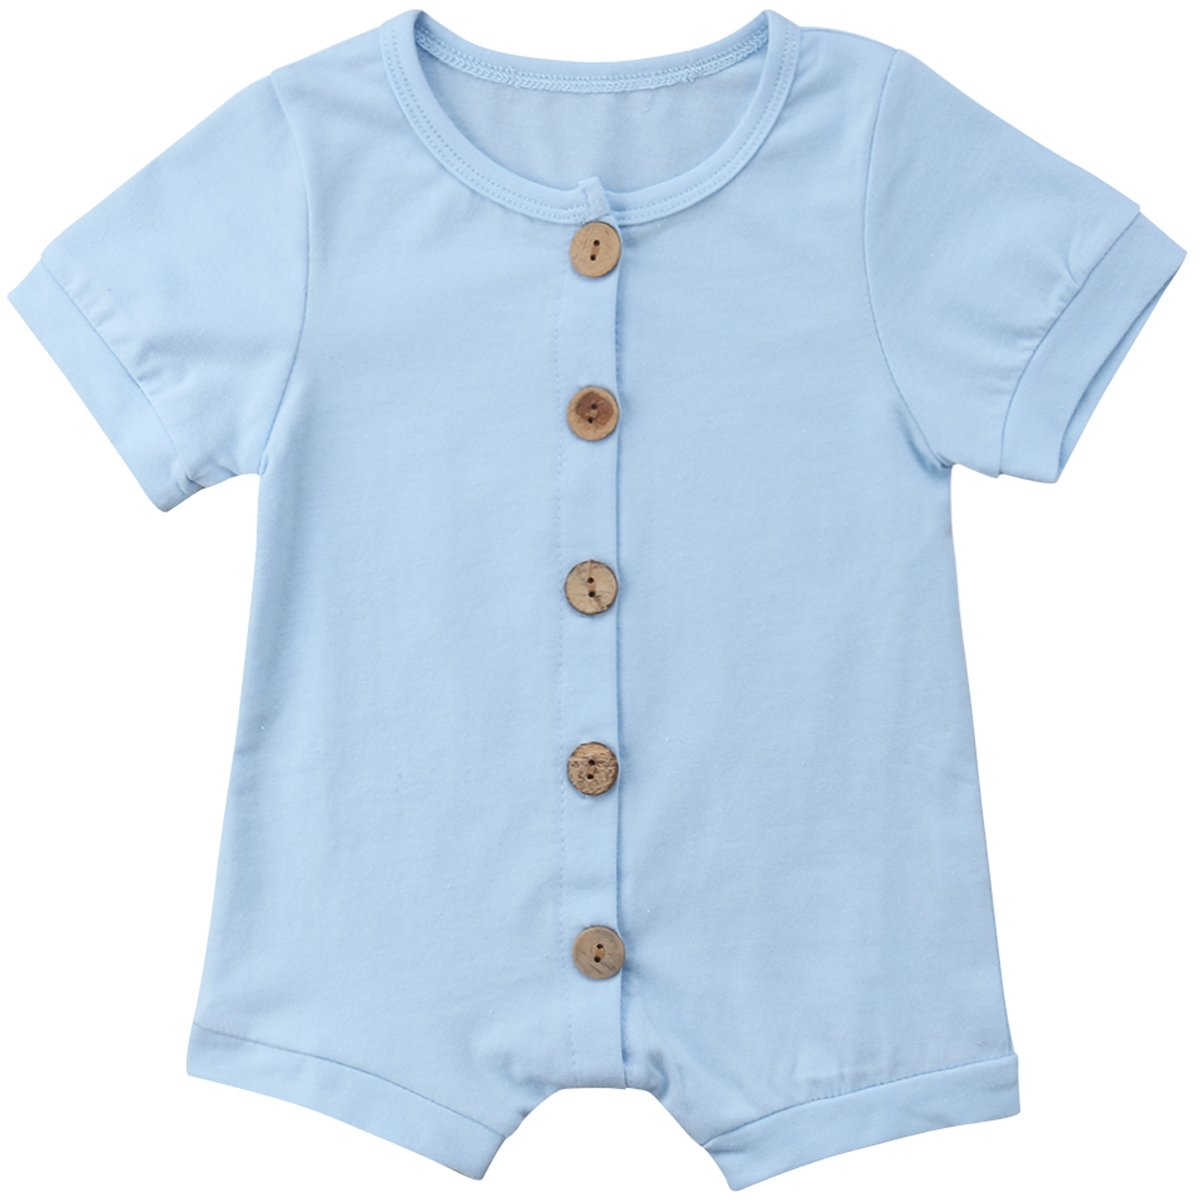 Aunavey Baby Boy Girl Short Sleeve Romper Jumpsuits Summer Casual Outfits